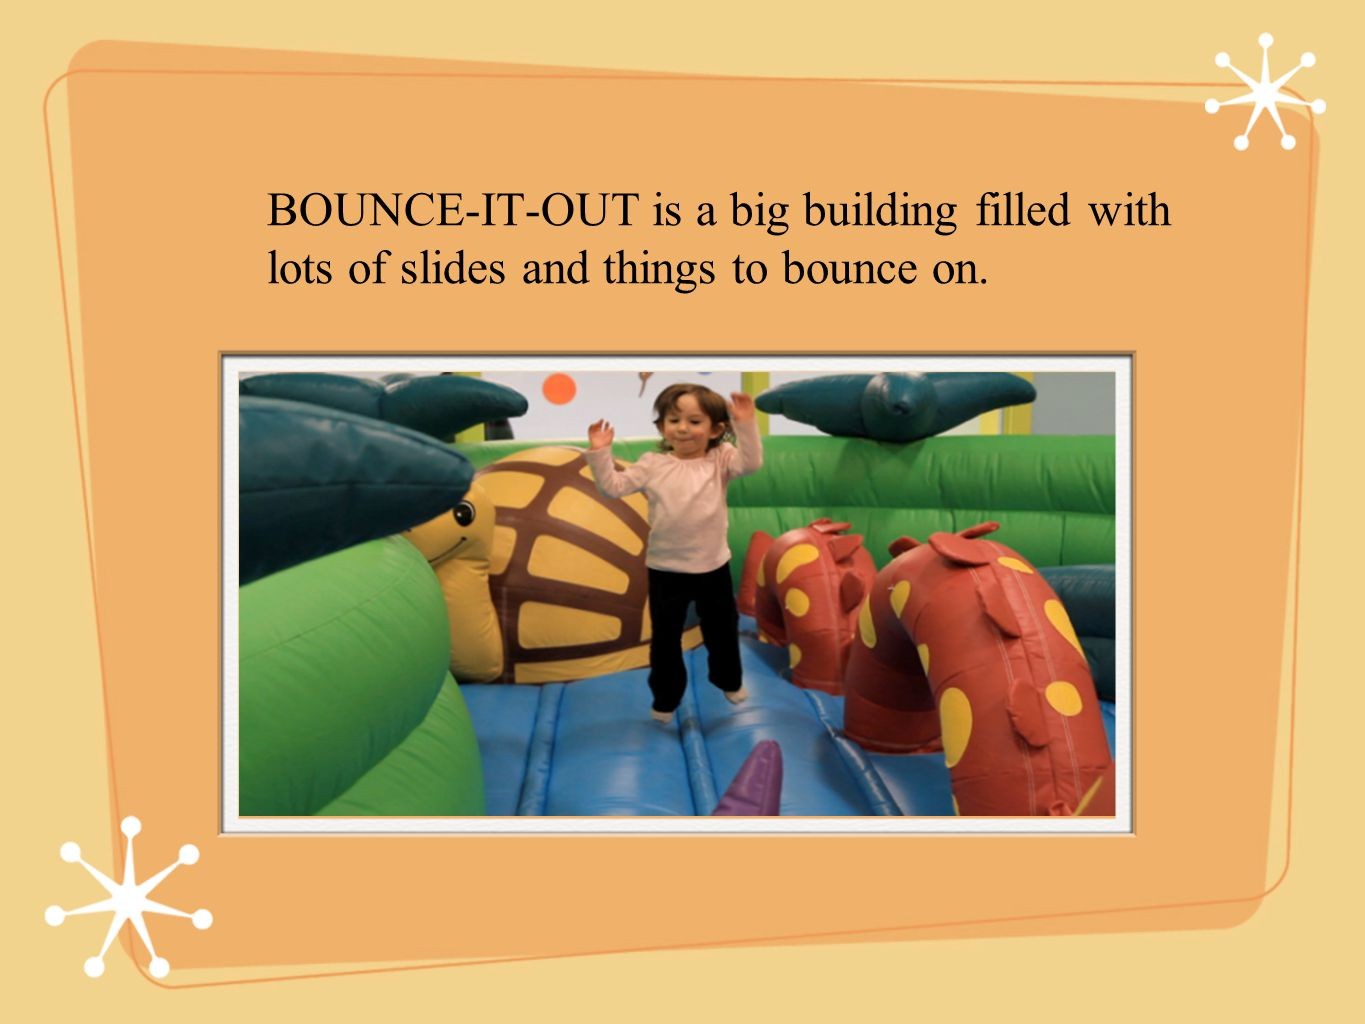 BOUNCE-IT-OUT is a big building filled with lots of slides and things to bounce on.